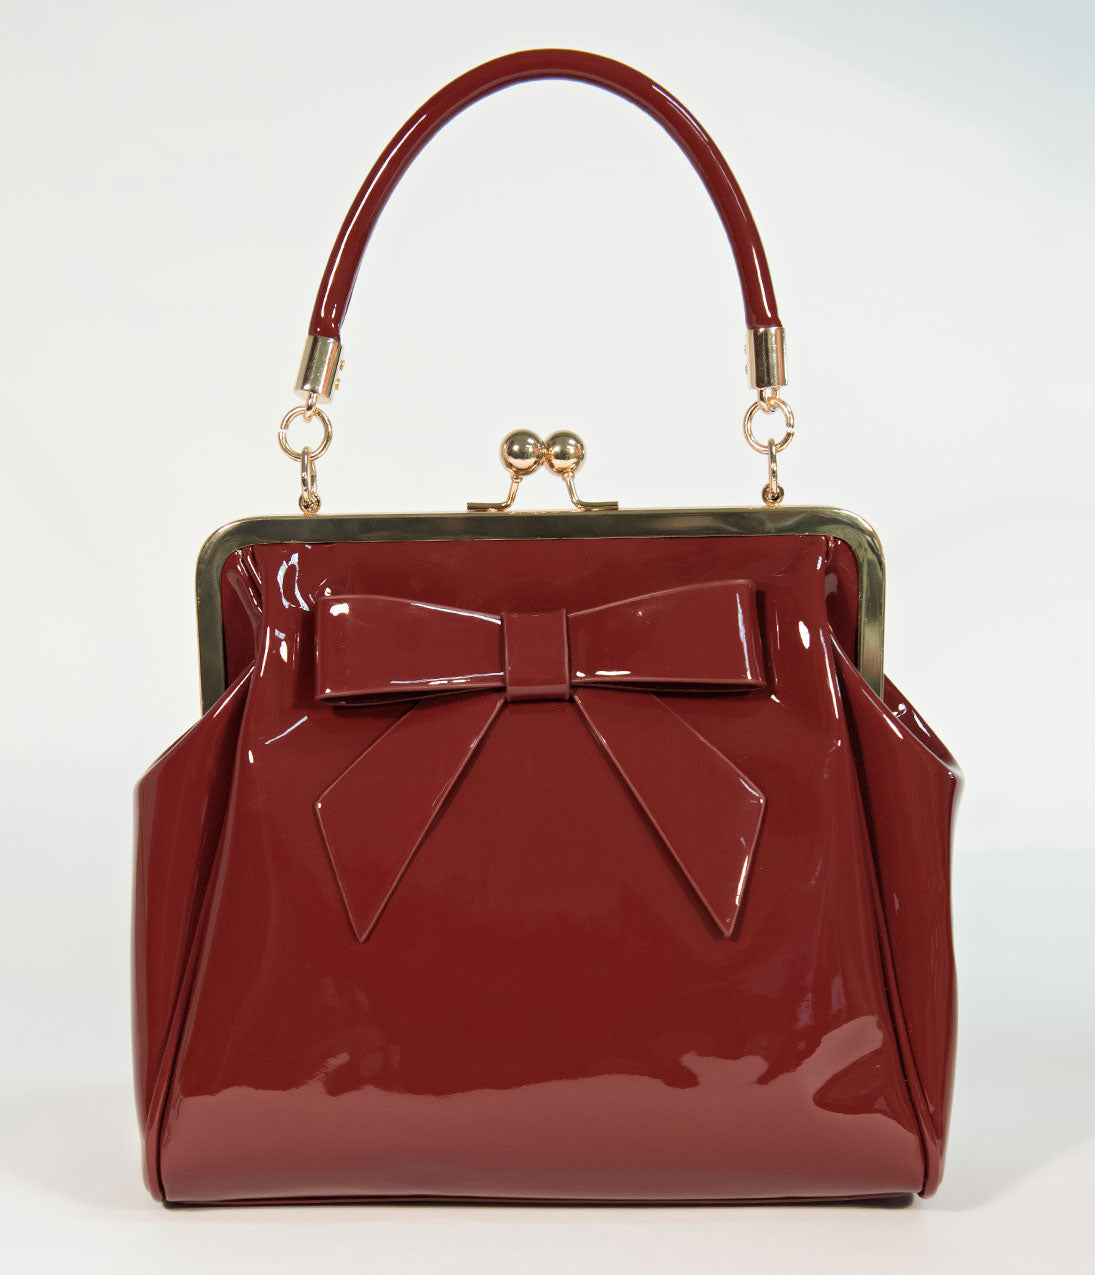 Vintage   Retro Handbags, Purses, Wallets, Bags Banned Burgundy Patent  Leatherette Top Frame 95311e035e